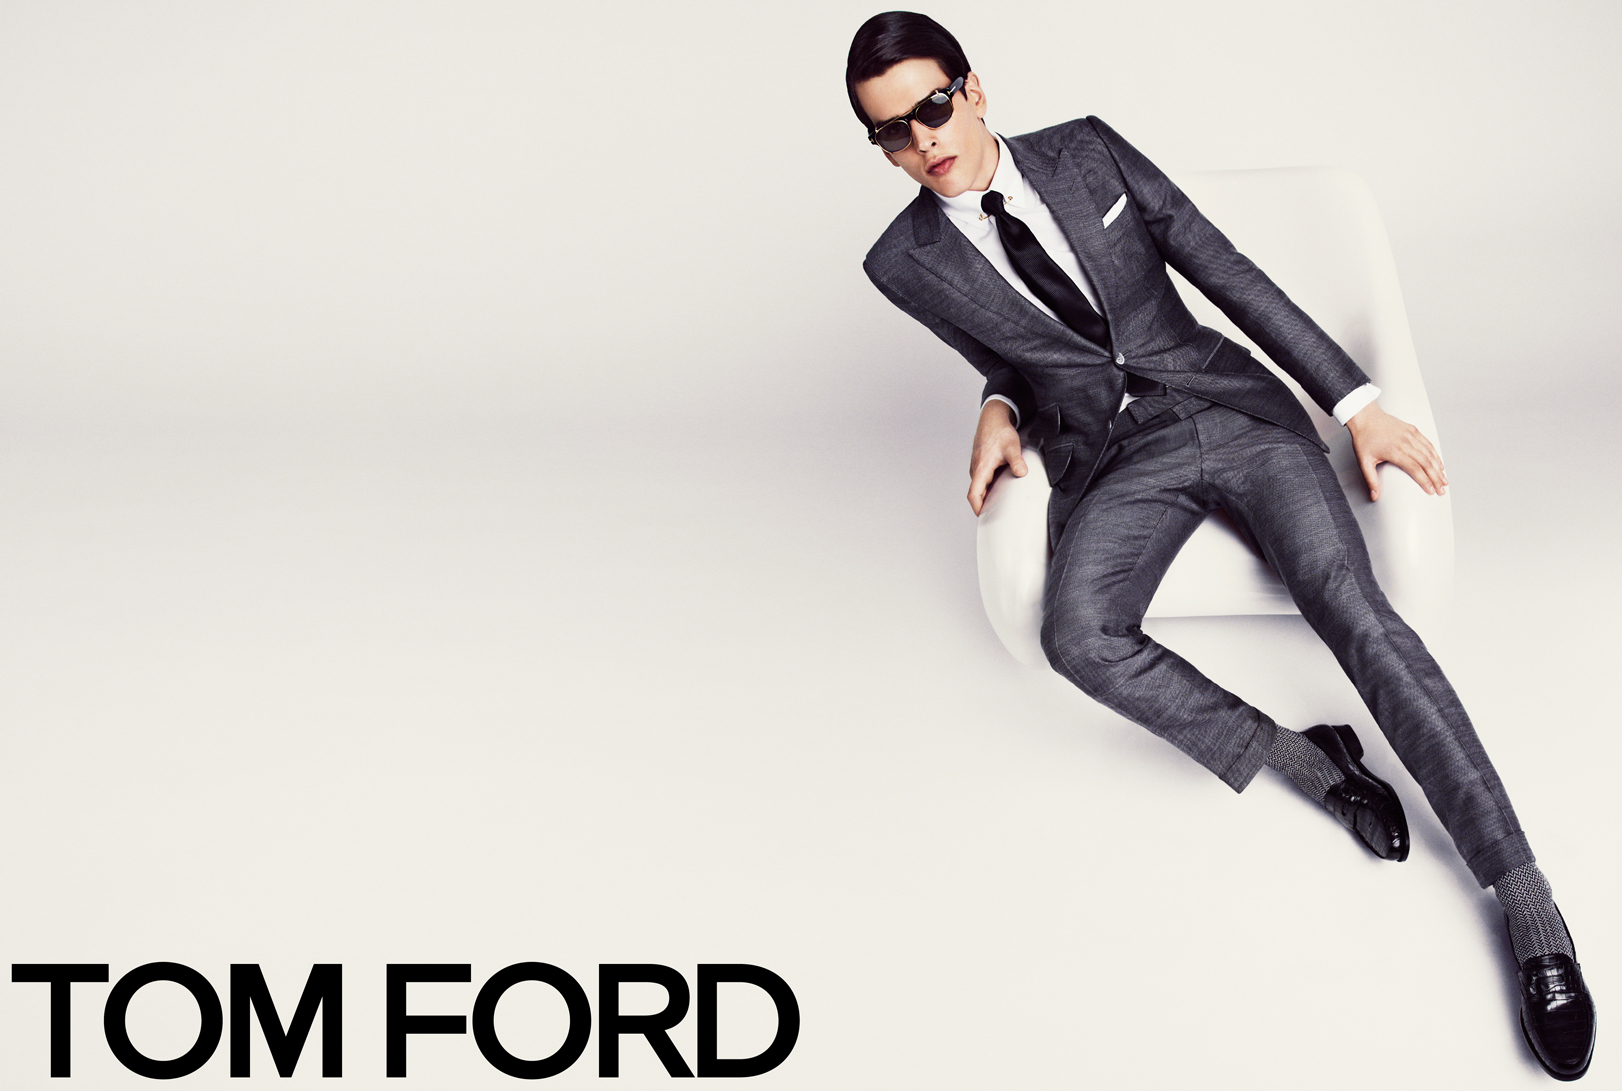 TOM FORD Spring/Summer 2013 Ad Campaign: Karlina Caune and Simon Van Meervenne (Hi Res) M SS13 CAMPAIGN